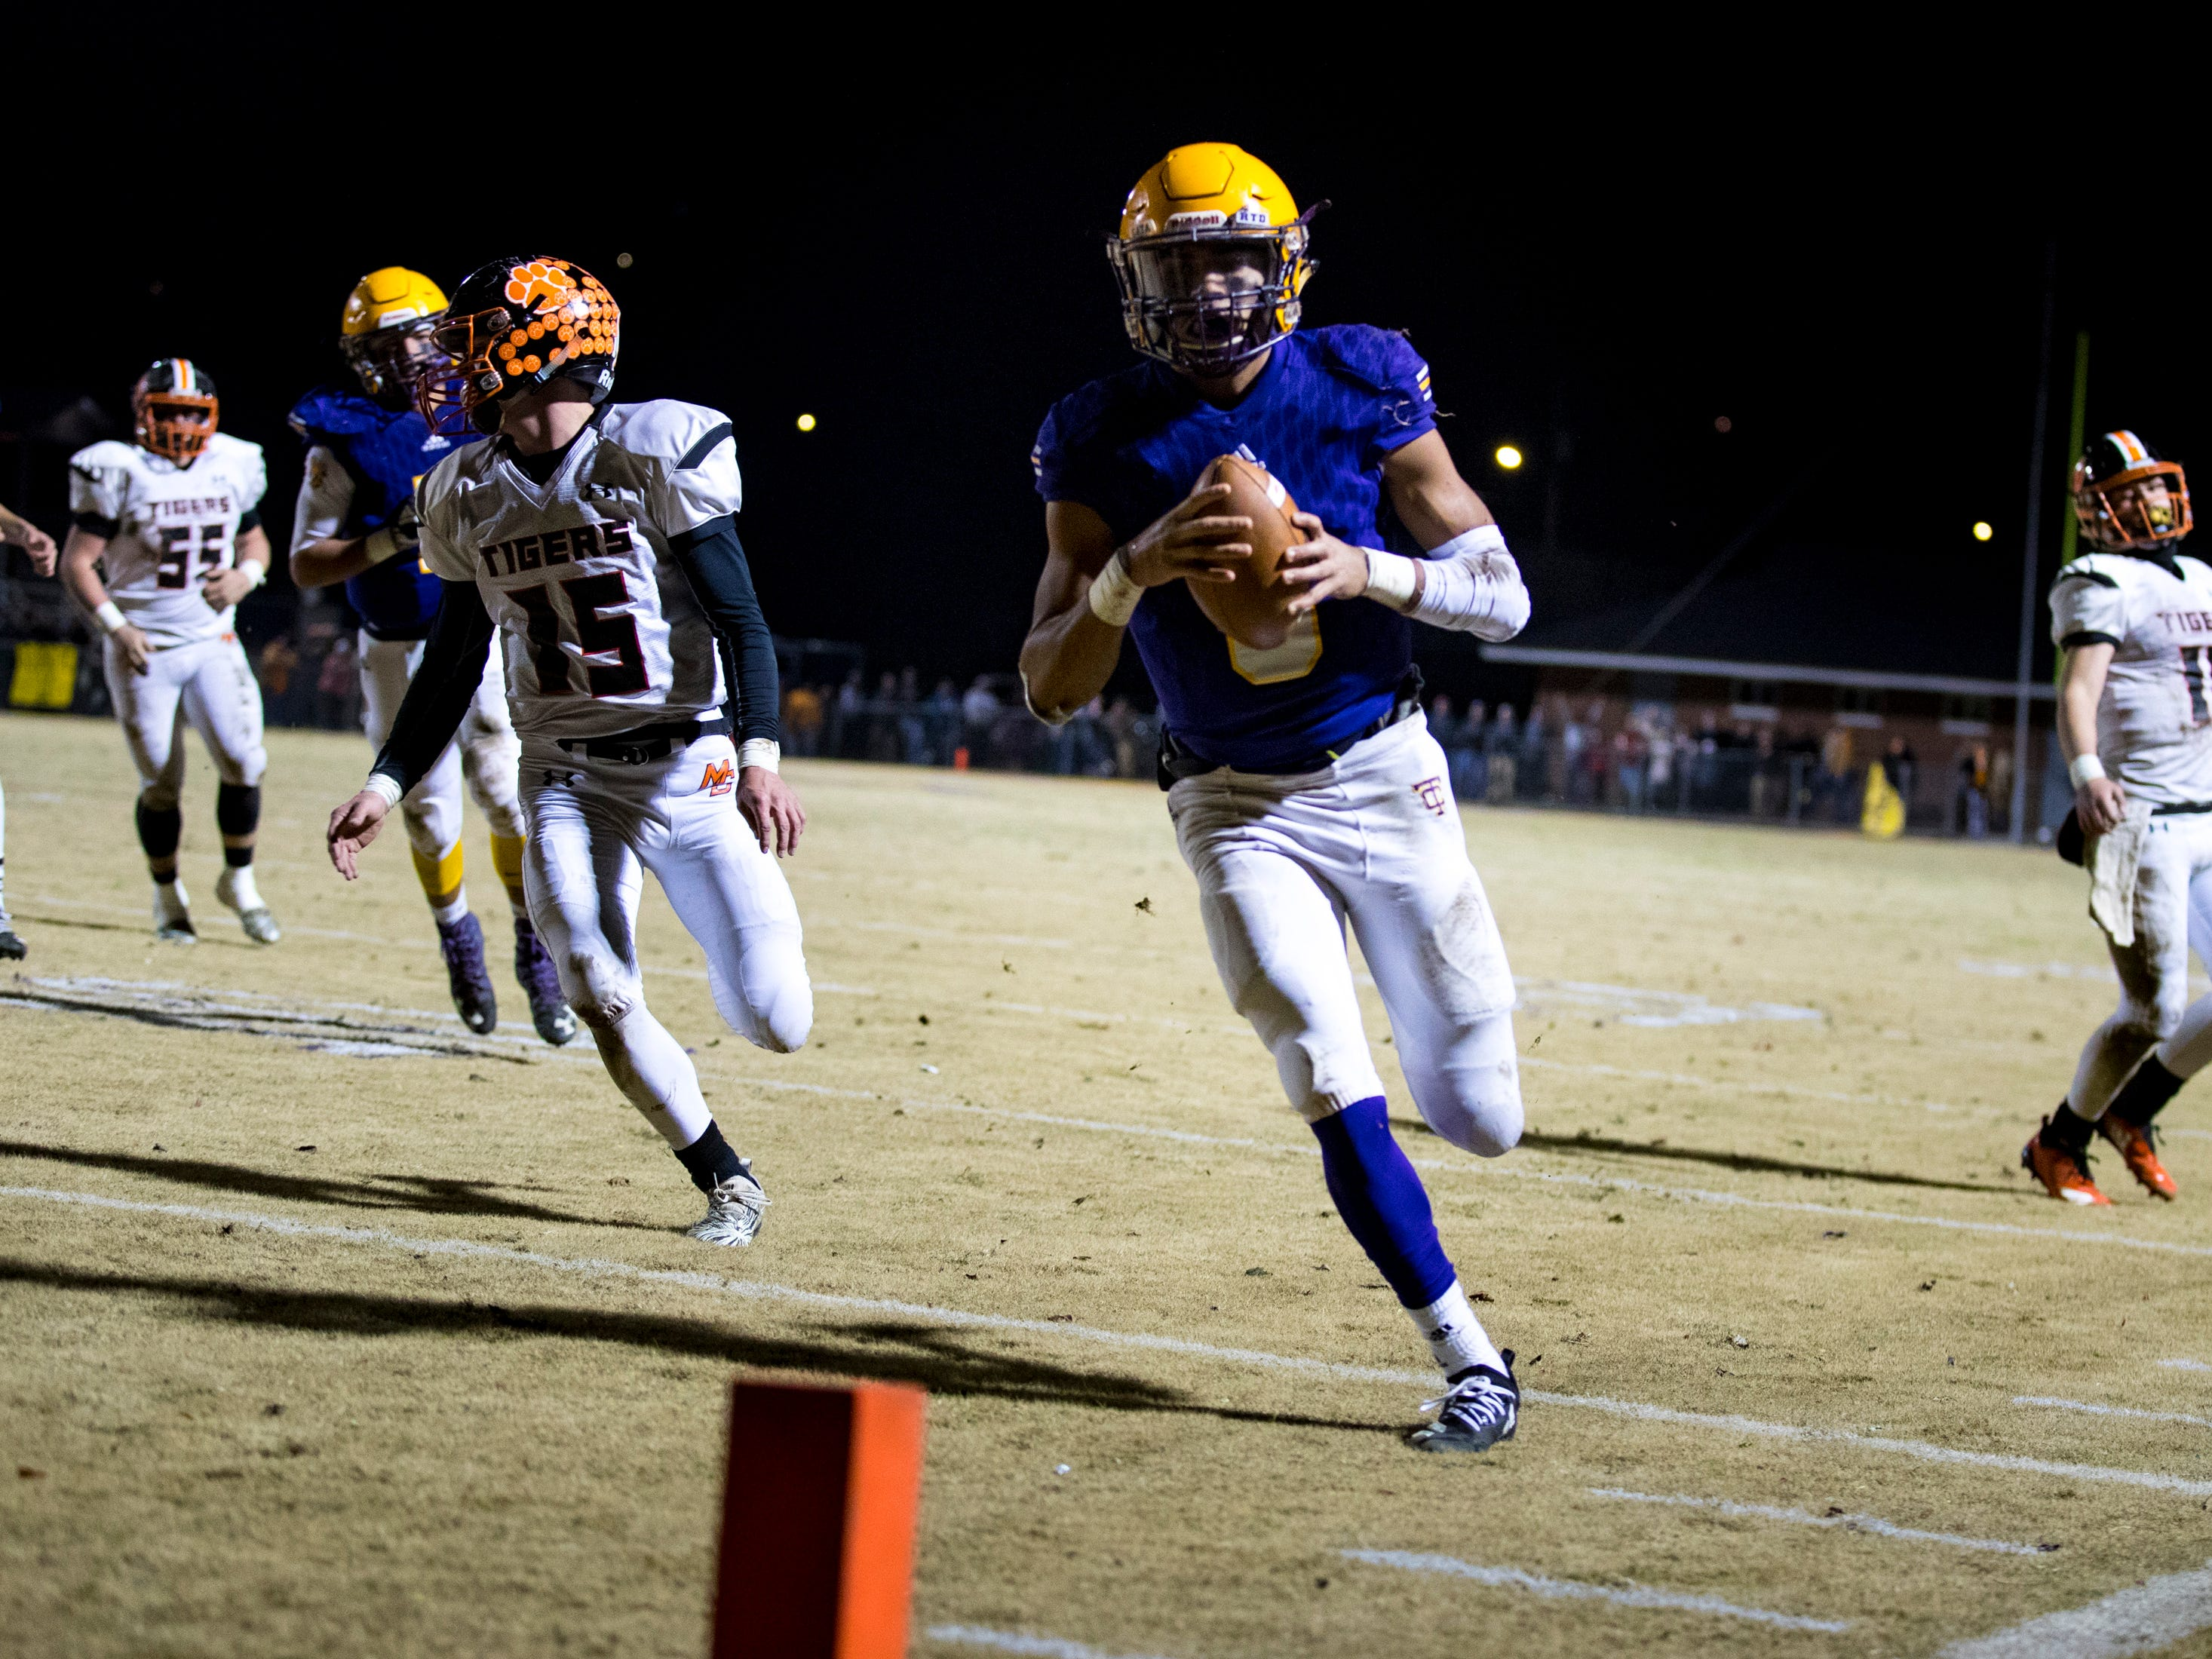 Trousdale County's Keyvont Baines (8) runs for a touchdown during Trousdale County's game against Meigs County at Jim Satterfield Stadium in Hartsville on Friday, Nov. 23, 2018.